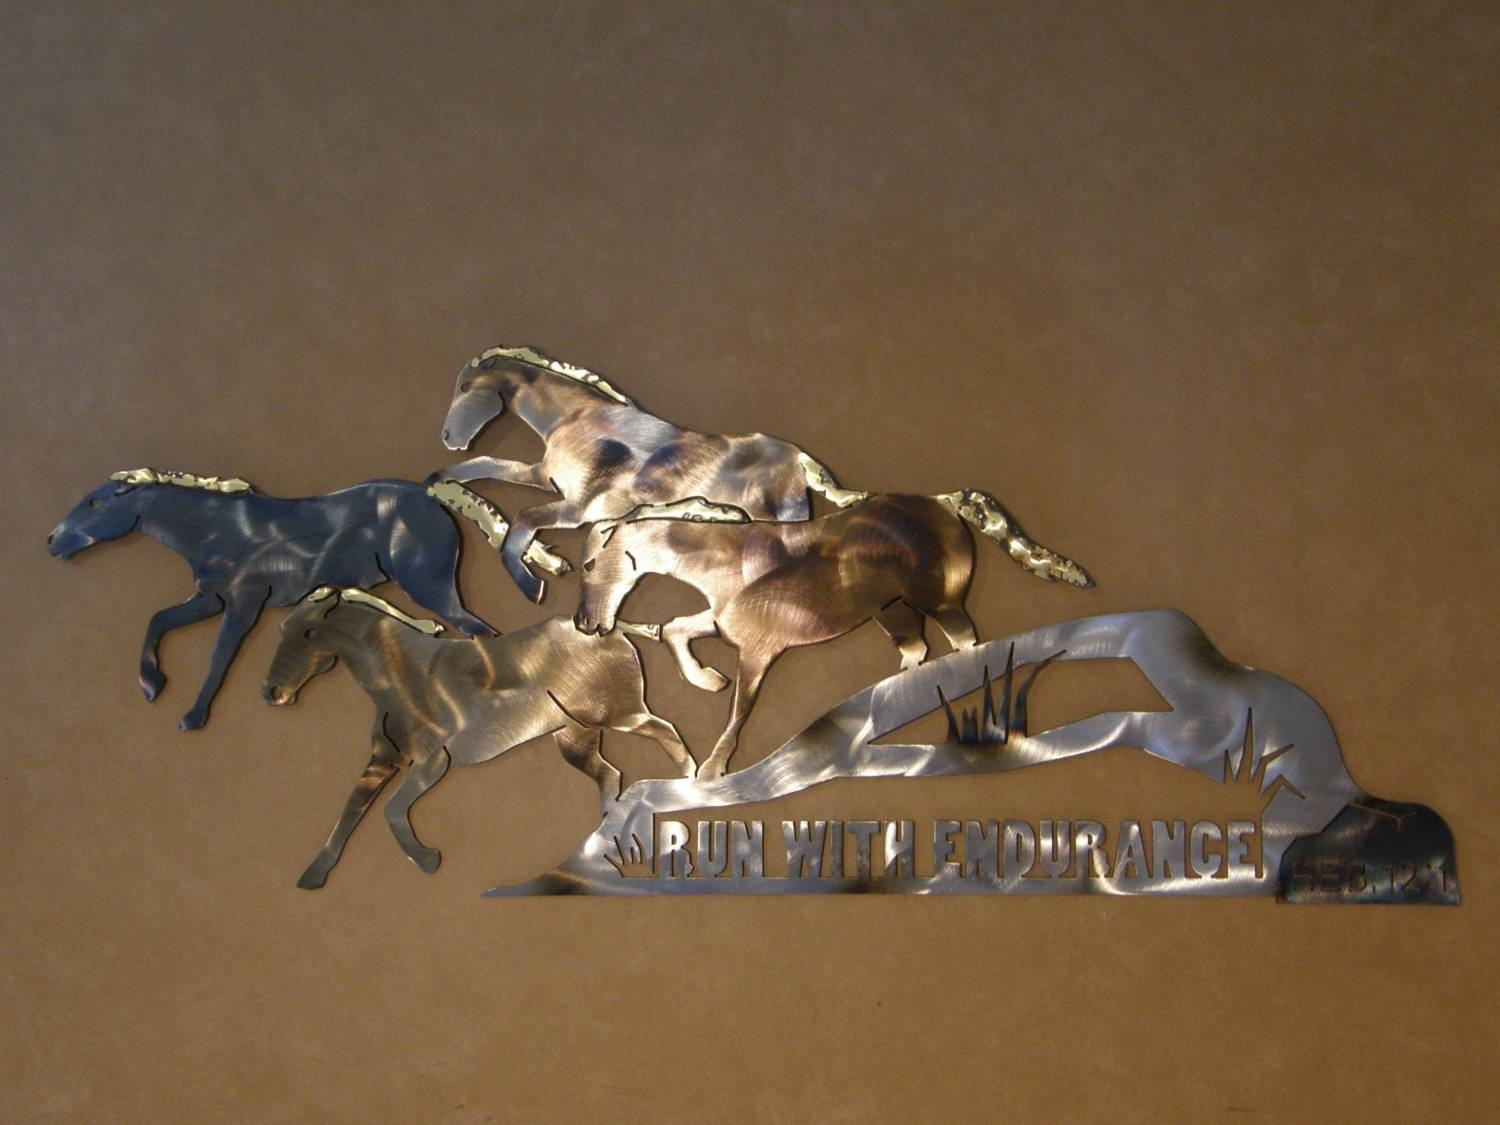 Christian Metal Wall Art Sculpture Of Running Horses Within Most Recent Christian Metal Wall Art (View 7 of 20)